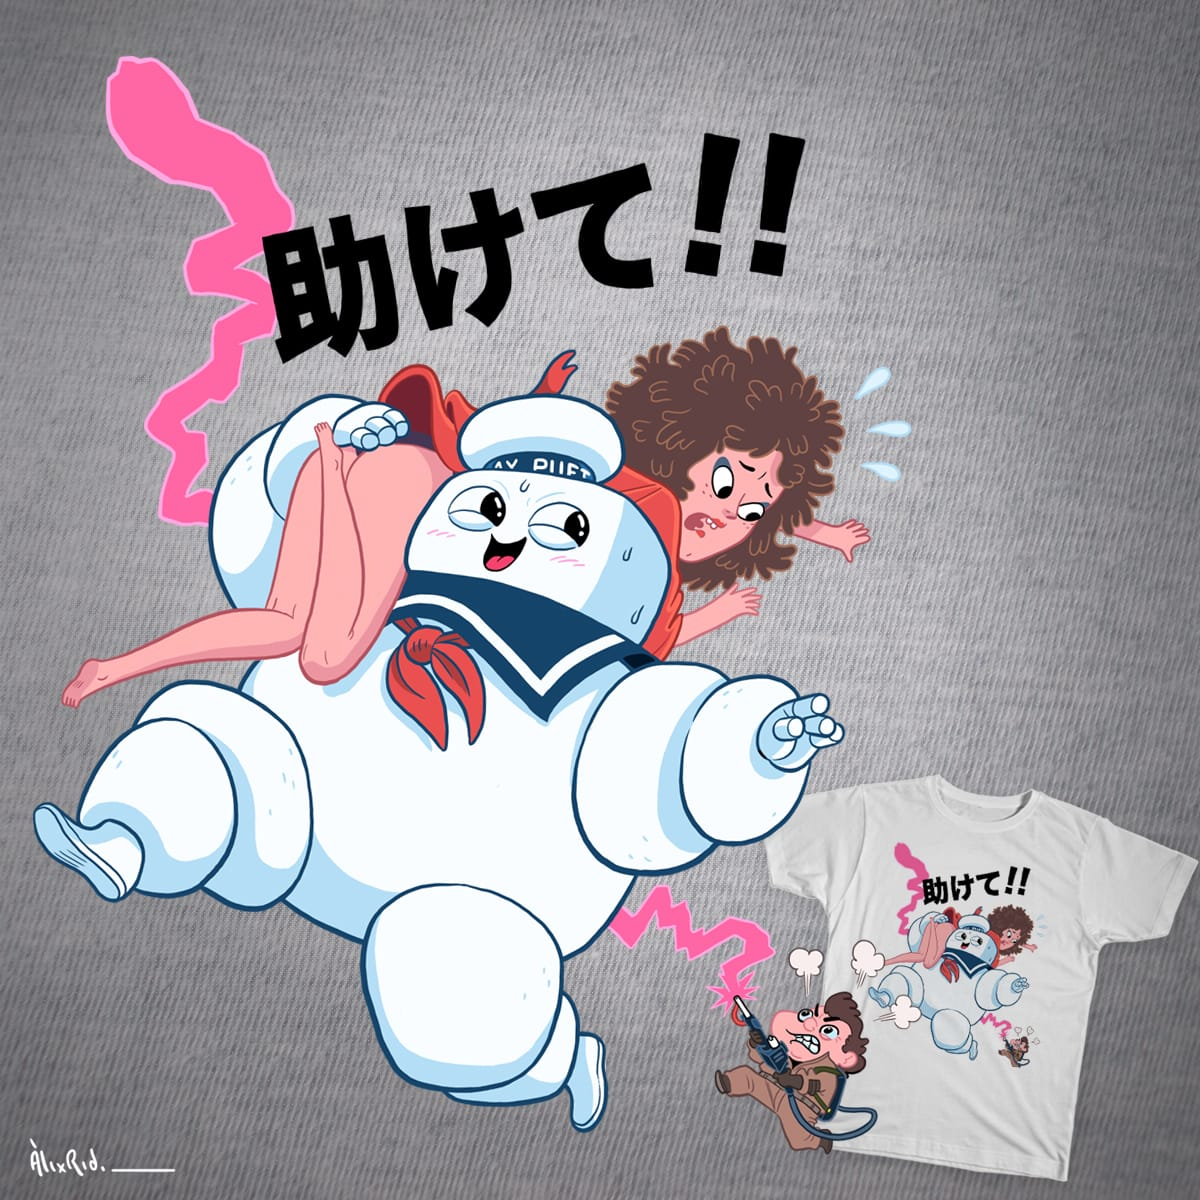 Ghostbusters  by Puchi_Po on Threadless